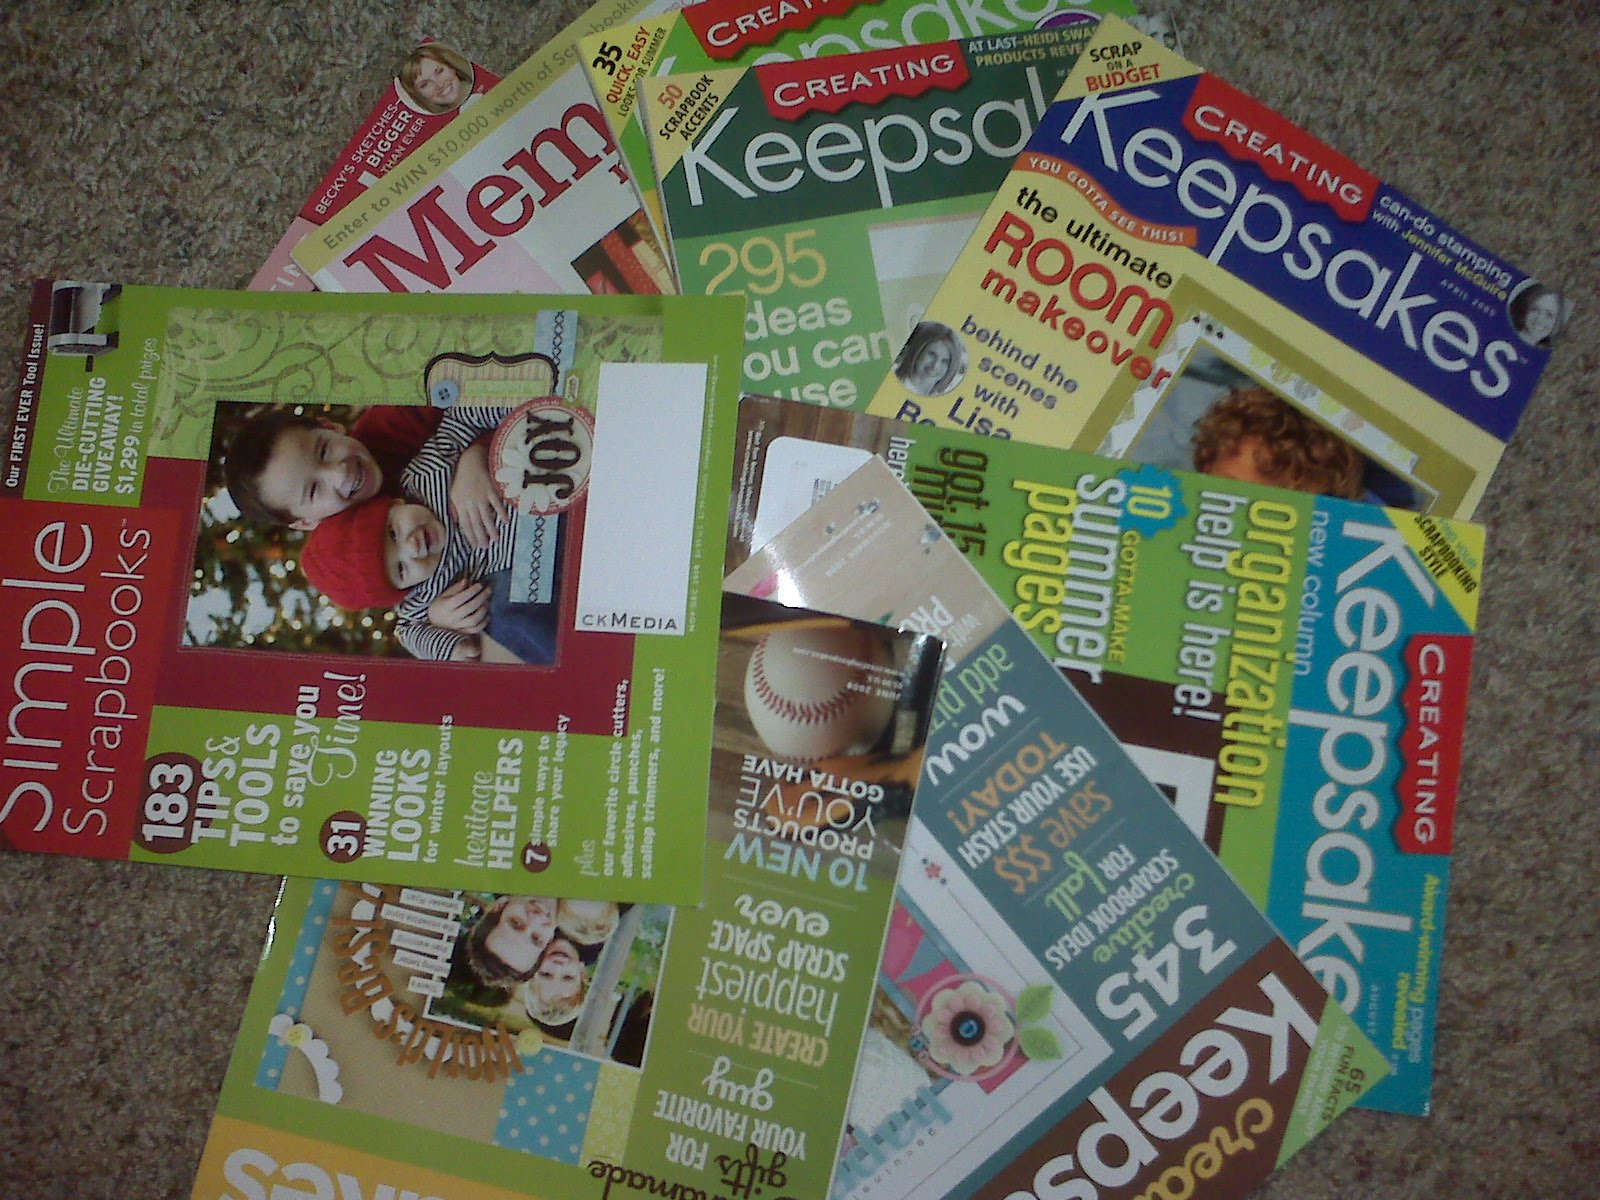 How to scrapbook magazines - I Was Cleaning Out My Storage Closet The Other Month And I Found A Tote Full Of Scrapbooking Magazines That I Have Kept Through The Years Memory Makers